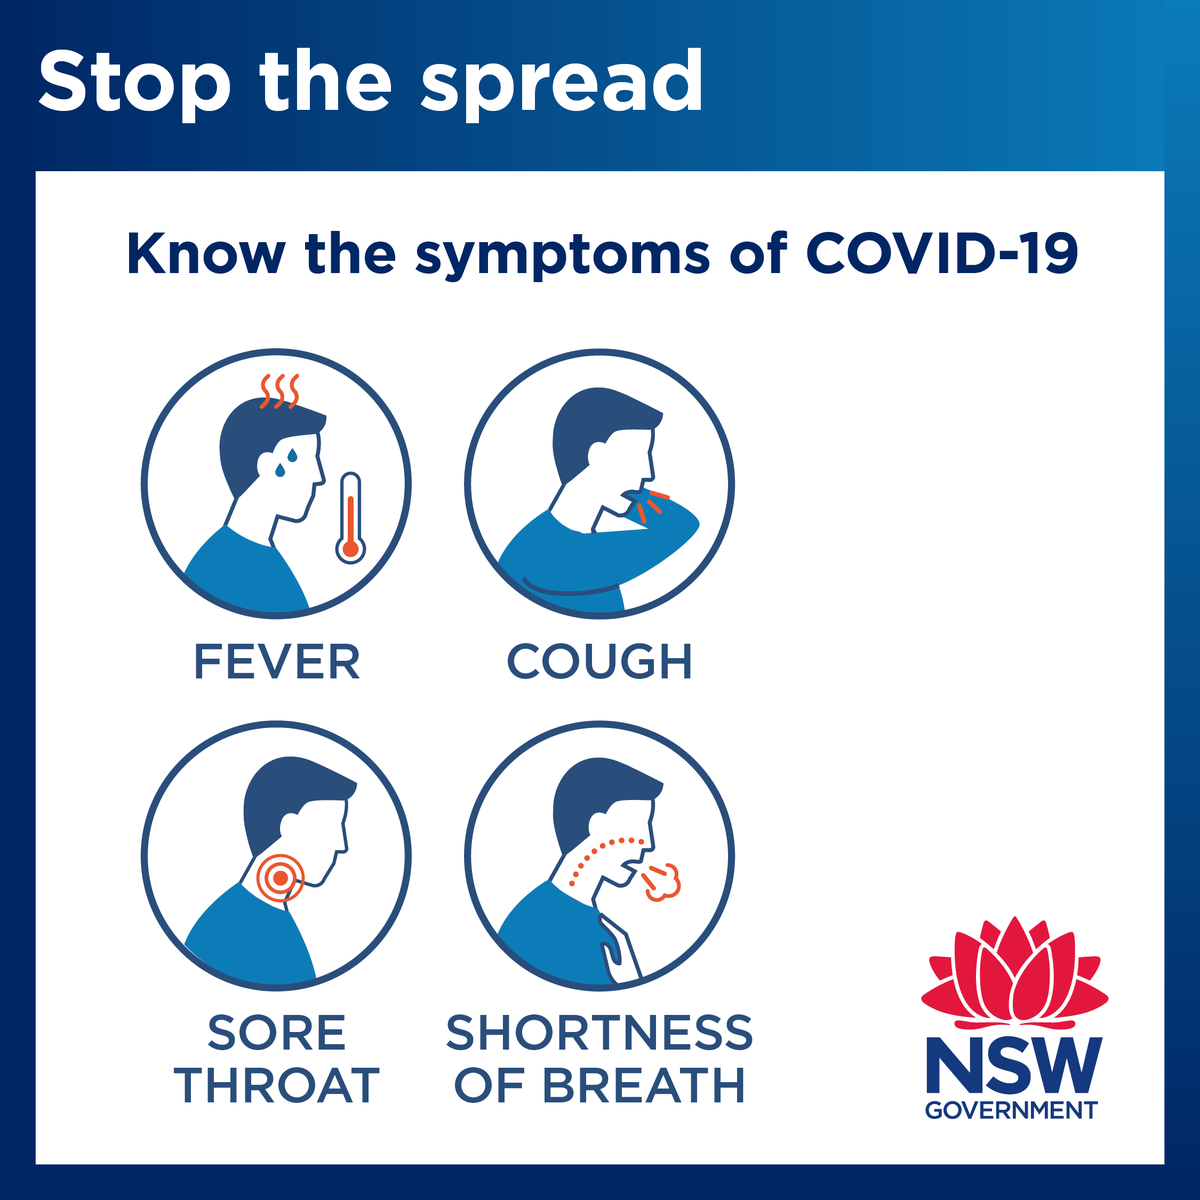 Nsw Health On Twitter If You Experience Any Of The Below Symptoms Call Your Doctor Or Healthdirect On 1800 022 222 If Your Symptoms Are Severe Visit Your Local Emergency Department Https T Co Fvczeeubyl